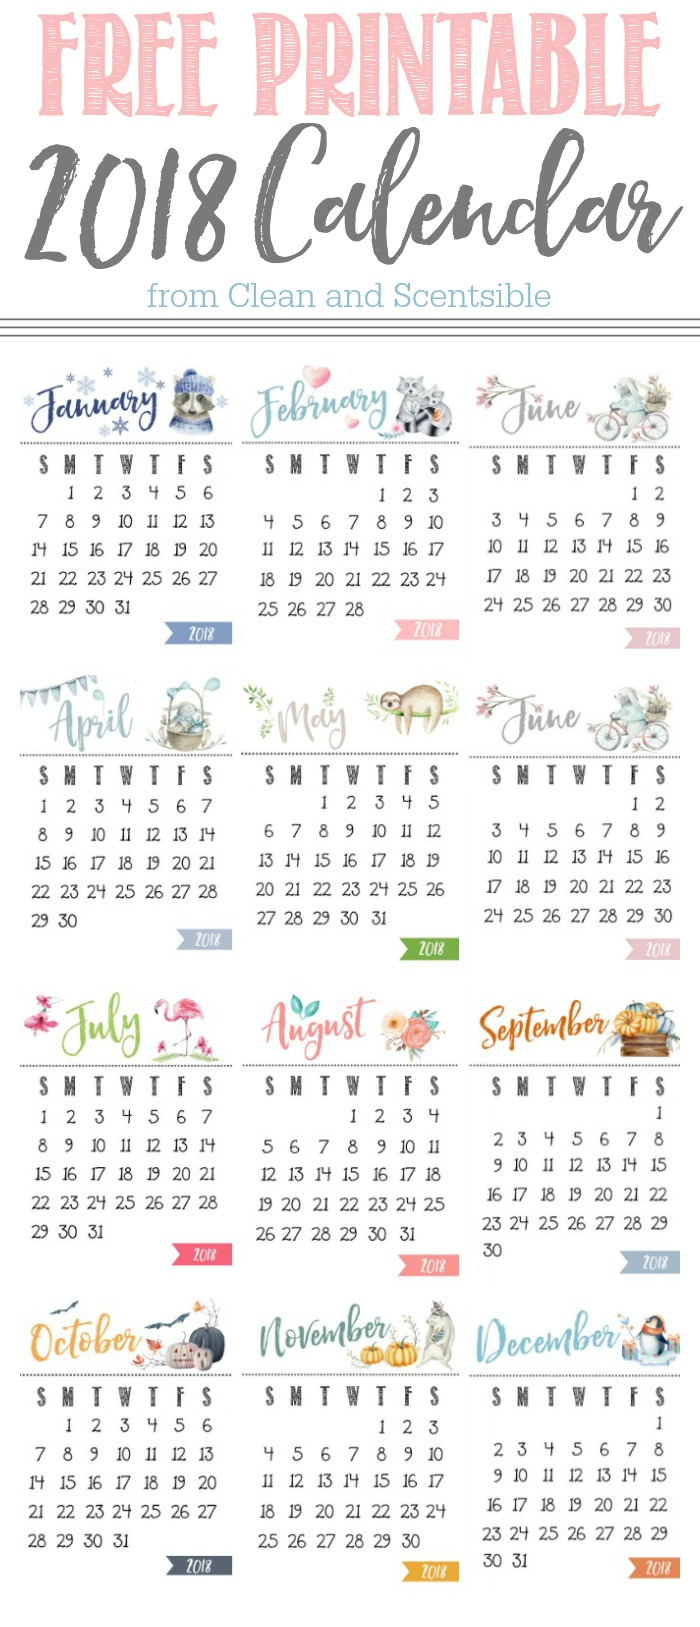 Free Printable Calendar Clean and Scentsible